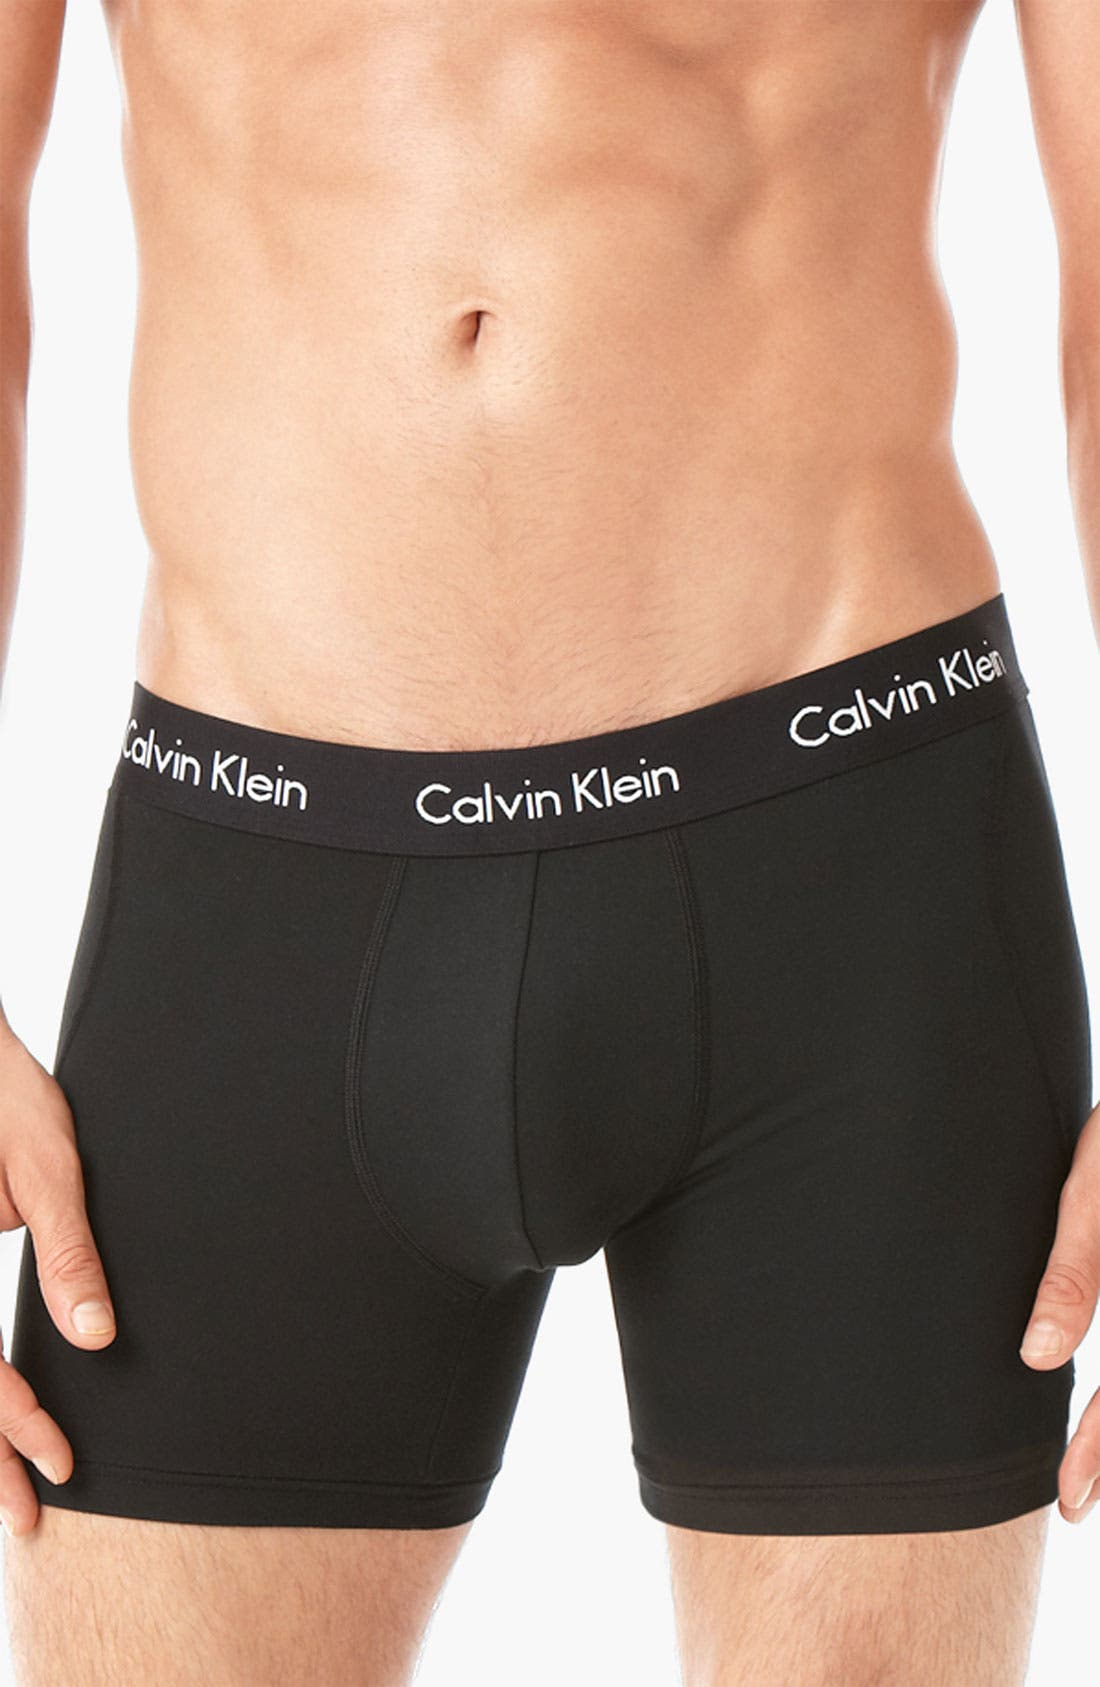 Alternate Image 2  - Calvin Klein Microfiber Boxer Briefs (Assorted 2-Pack)(Online Exclusive)